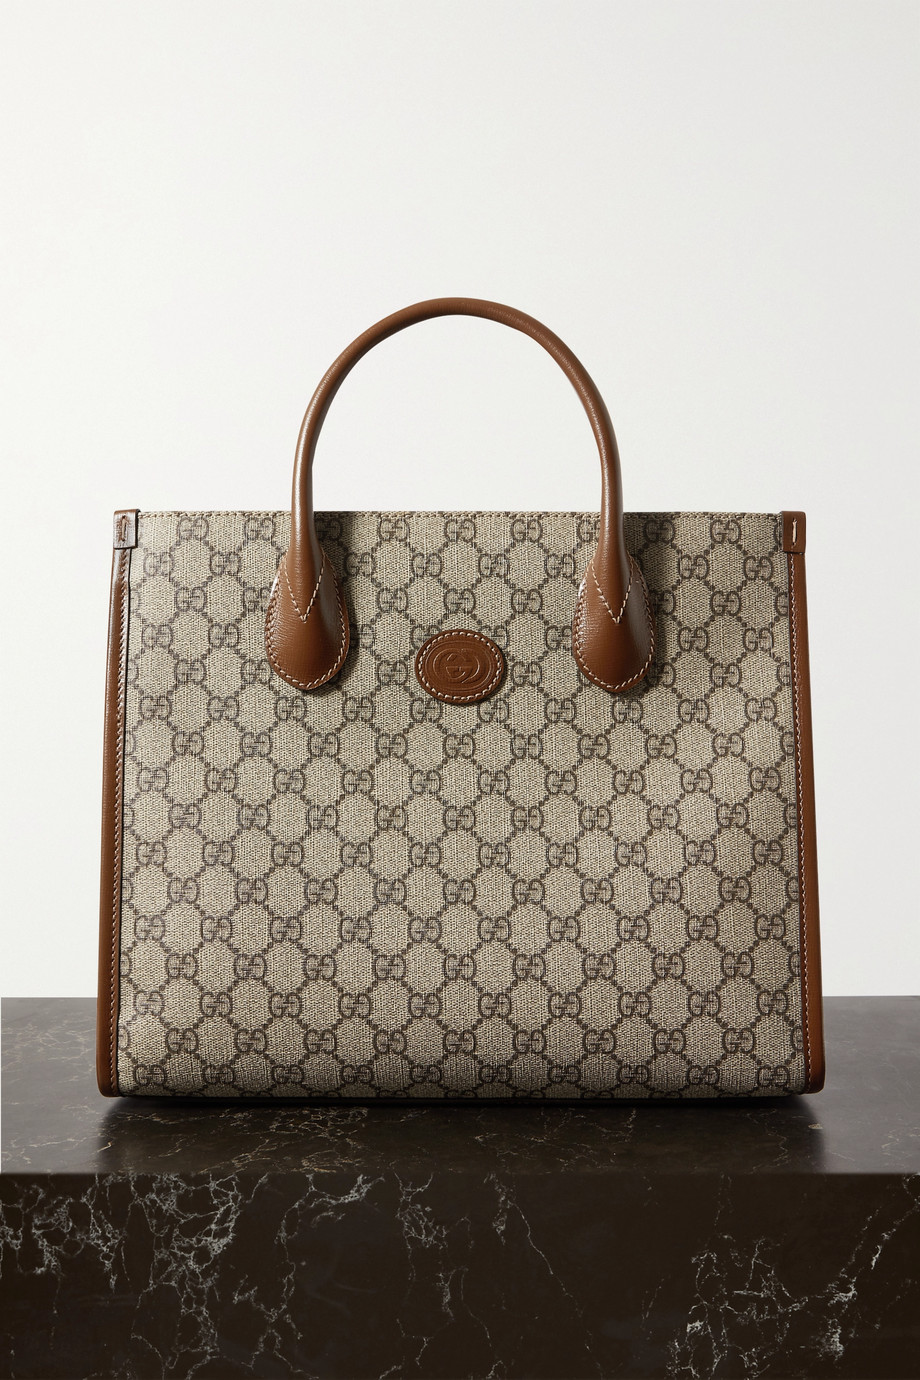 Gucci Ophidia Luggage leather-trimmed printed coated-canvas tote